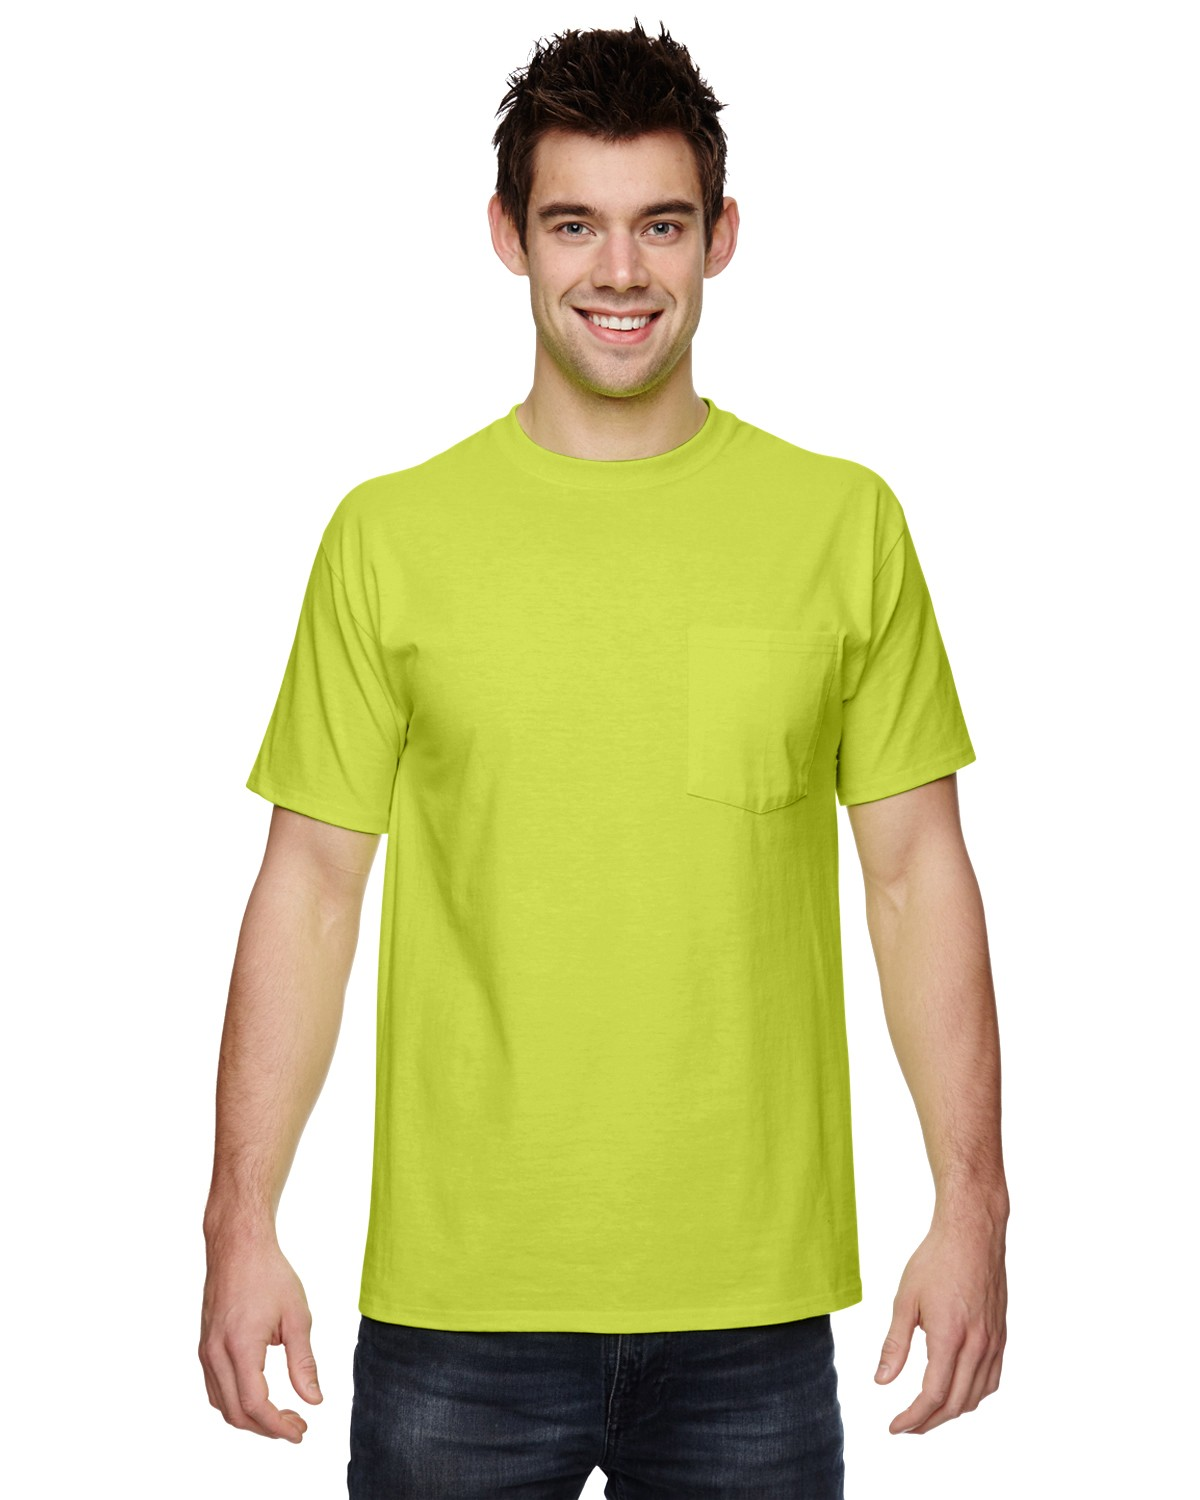 3931P Fruit of the Loom SAFETY GREEN